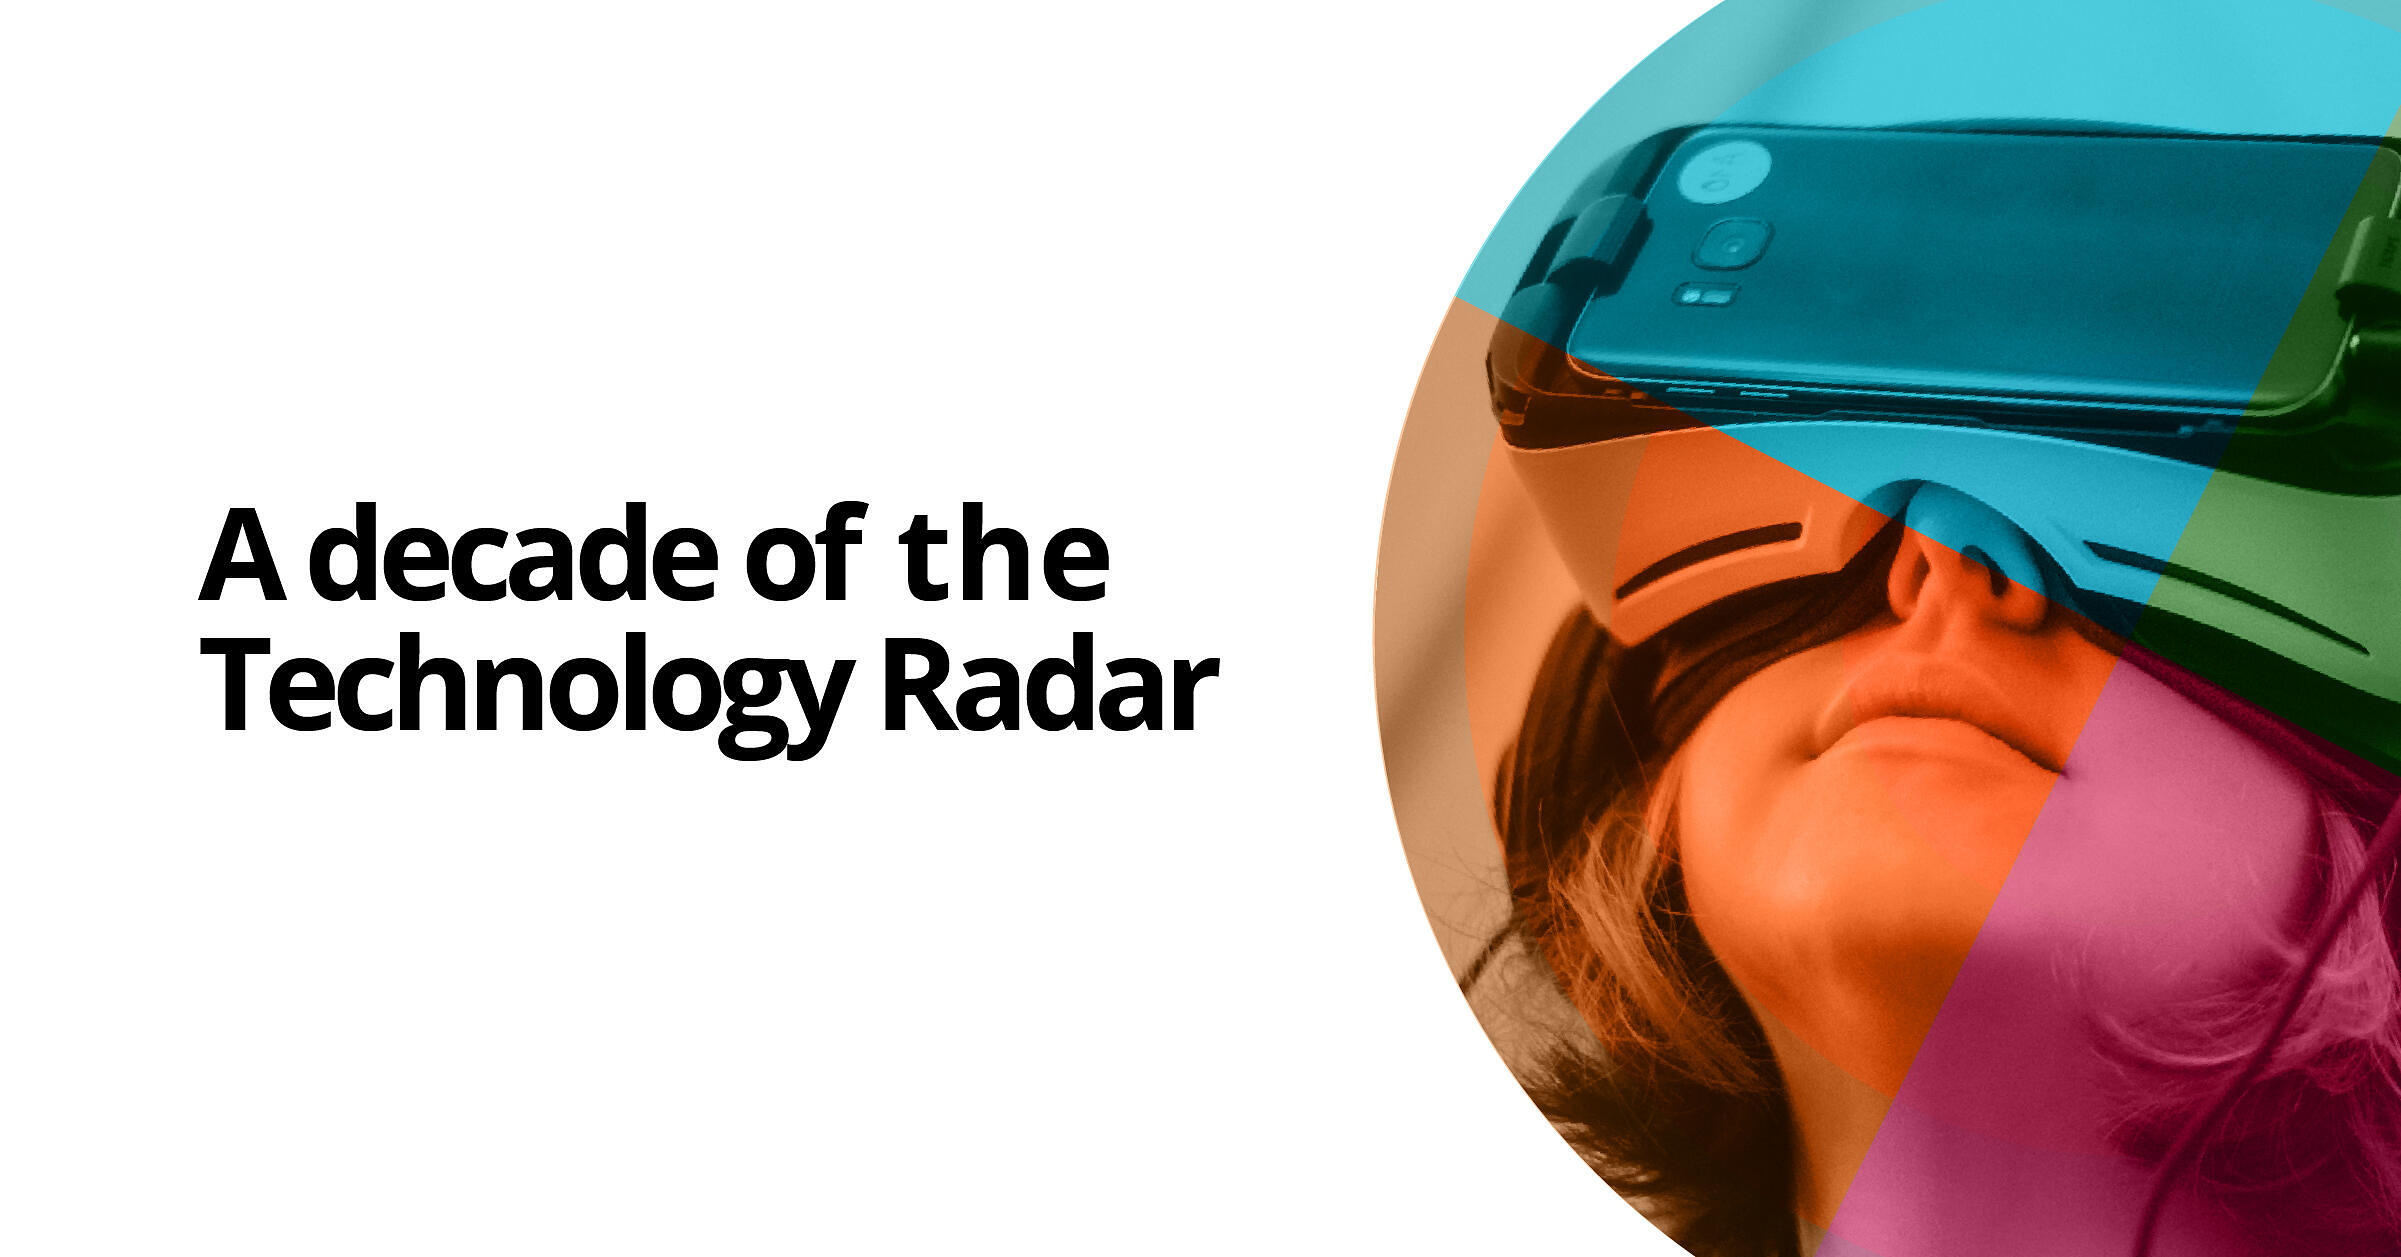 A decade of the Technology Radar